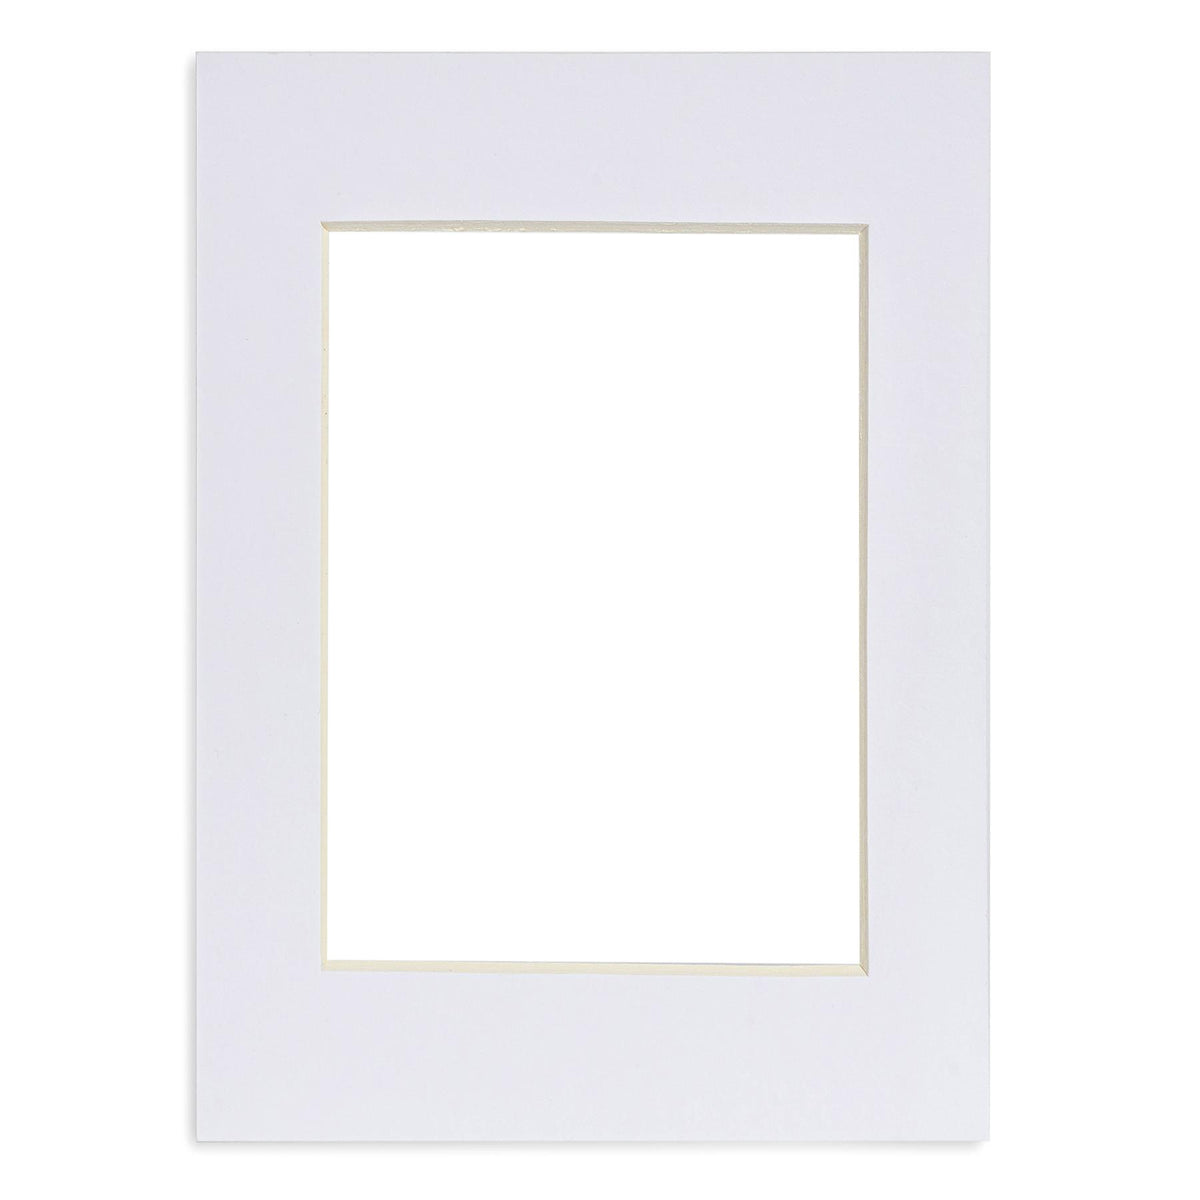 "Nicola Spring Picture Mount for 8 x 10"" Frame 